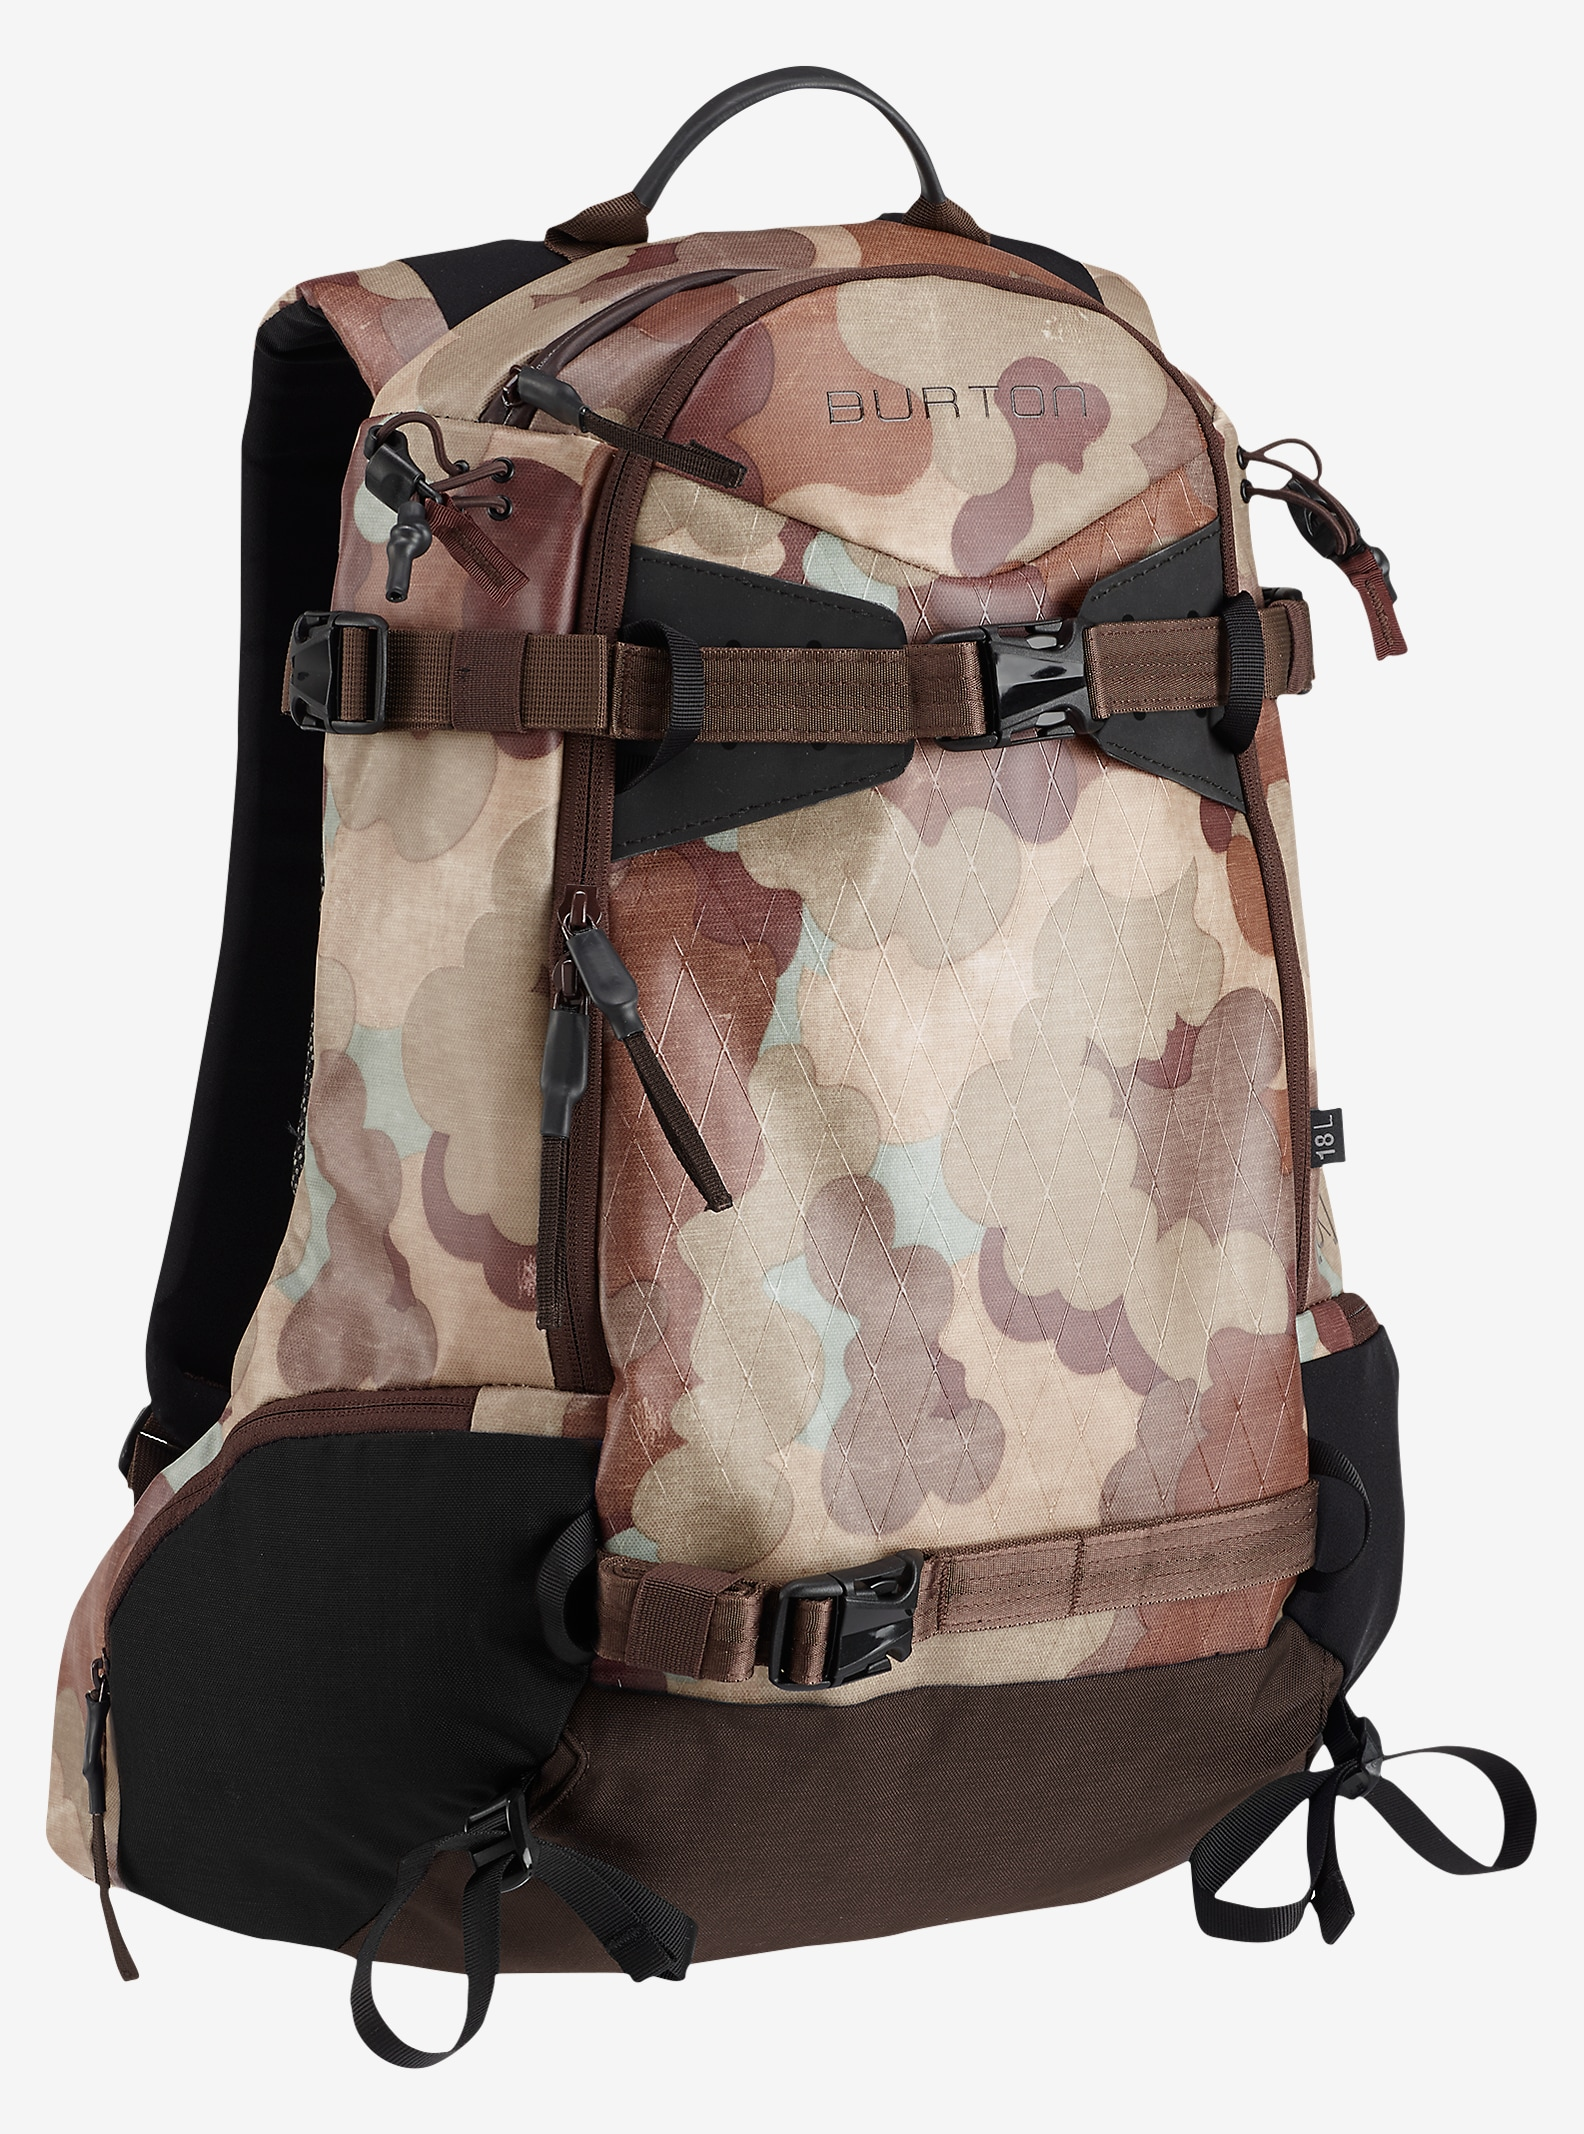 Burton Side Country 18L Backpack shown in Storm Camo Tarp